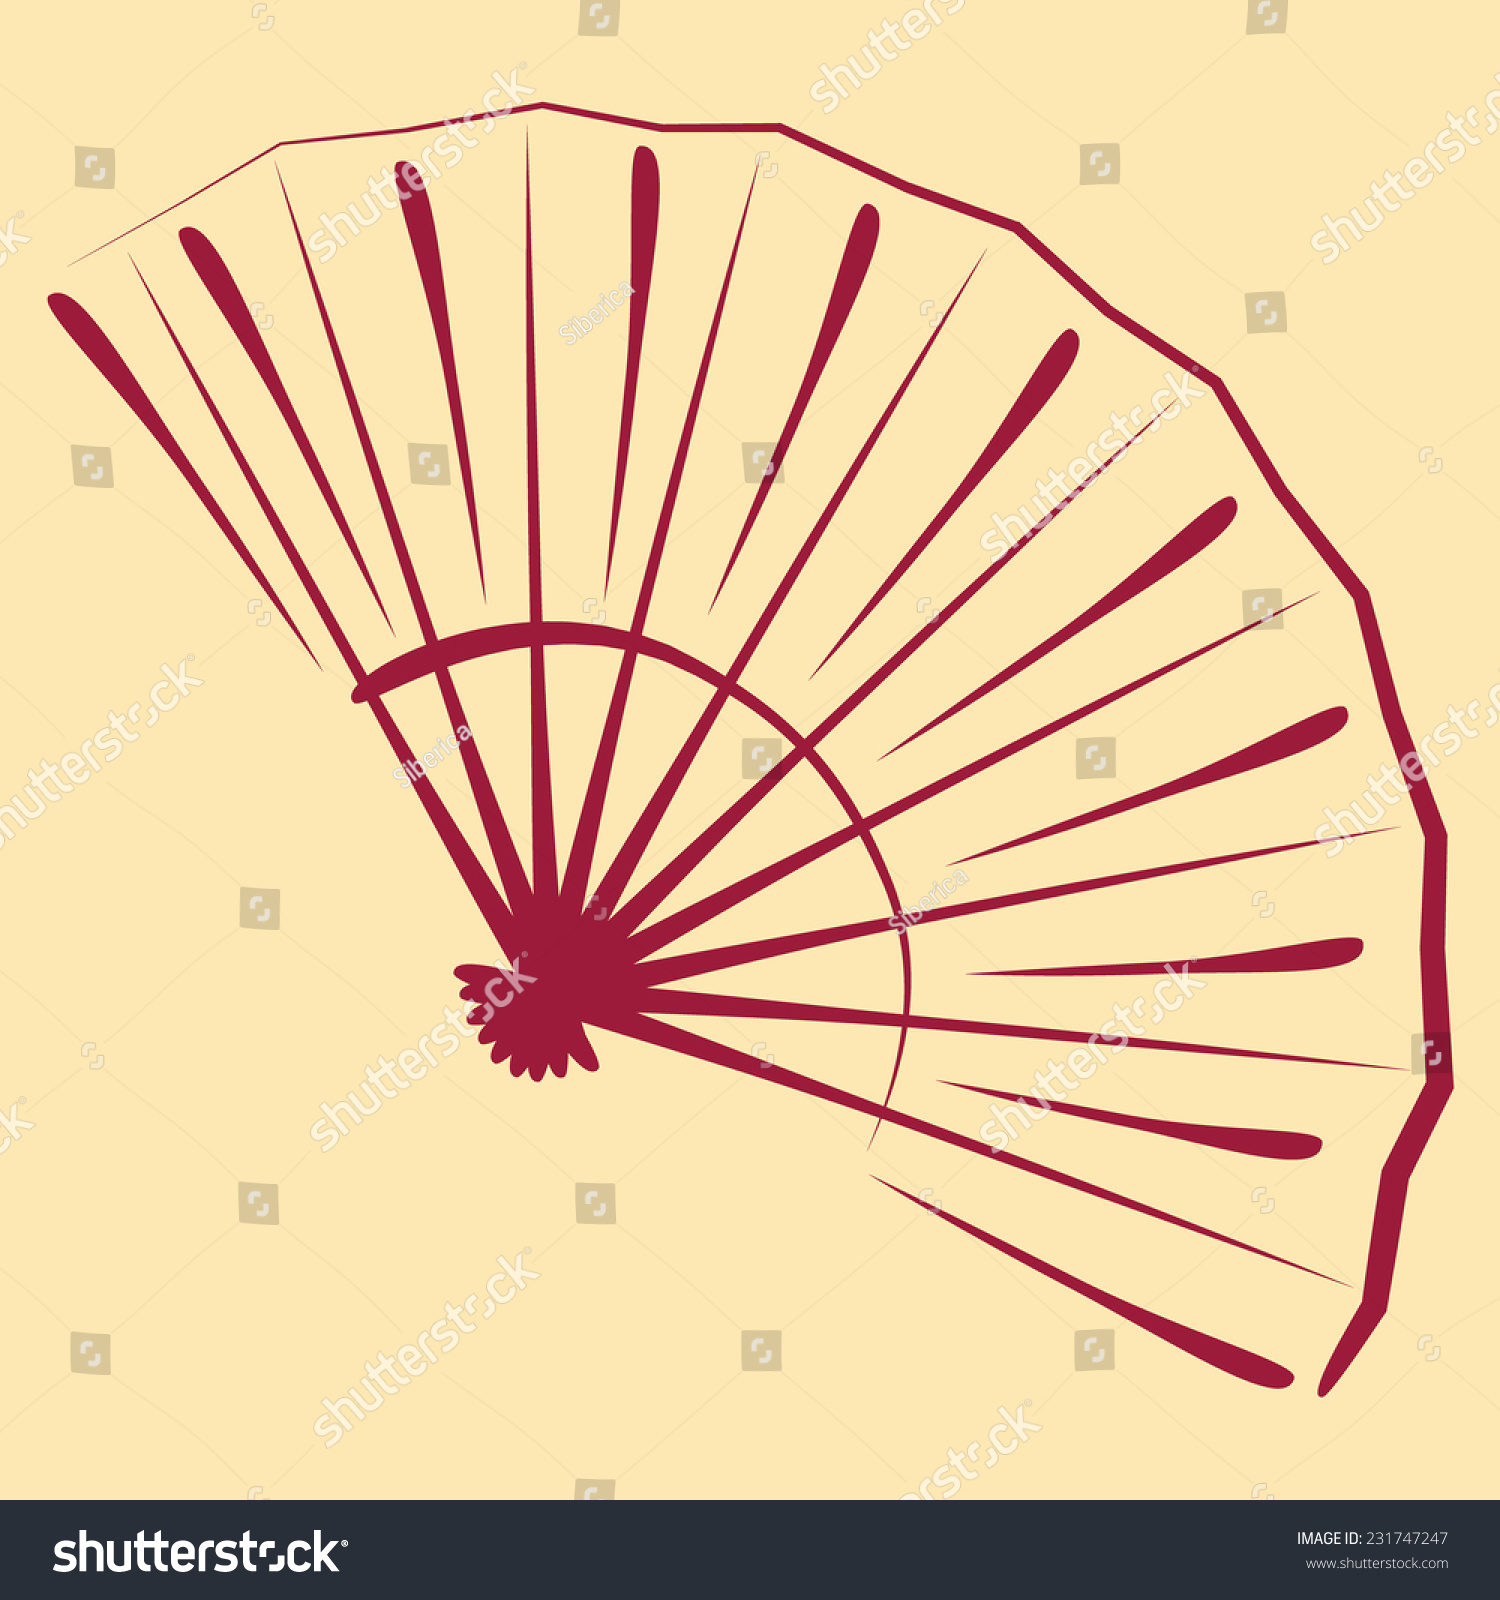 hand fan template. simple and elegant sketched folding fan. background can be easily removed. design template for hand fan